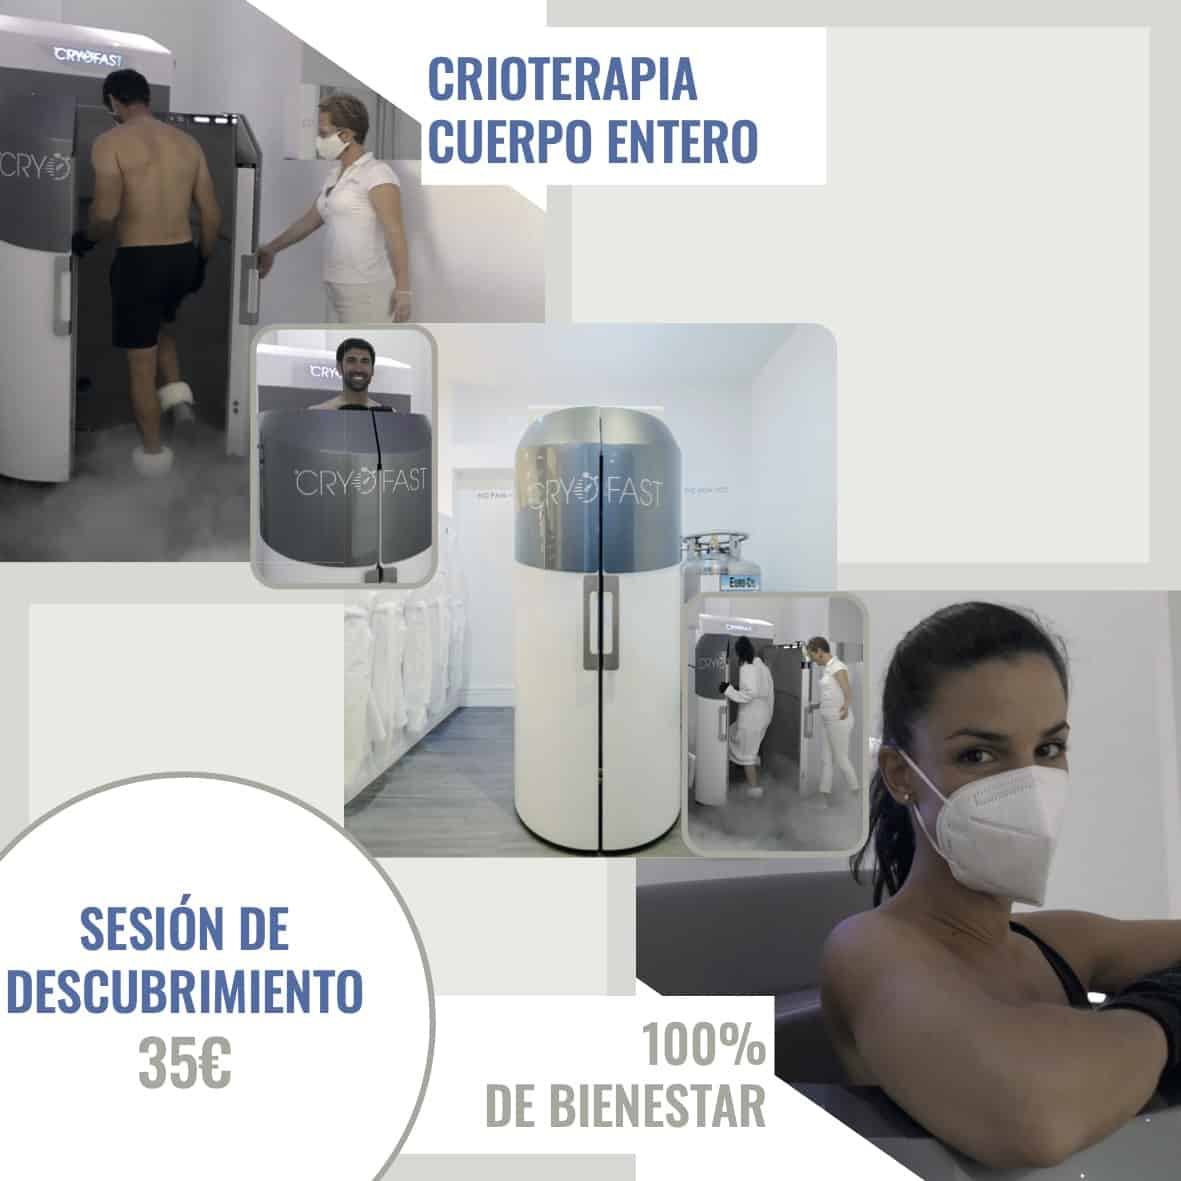 Cryoterapia